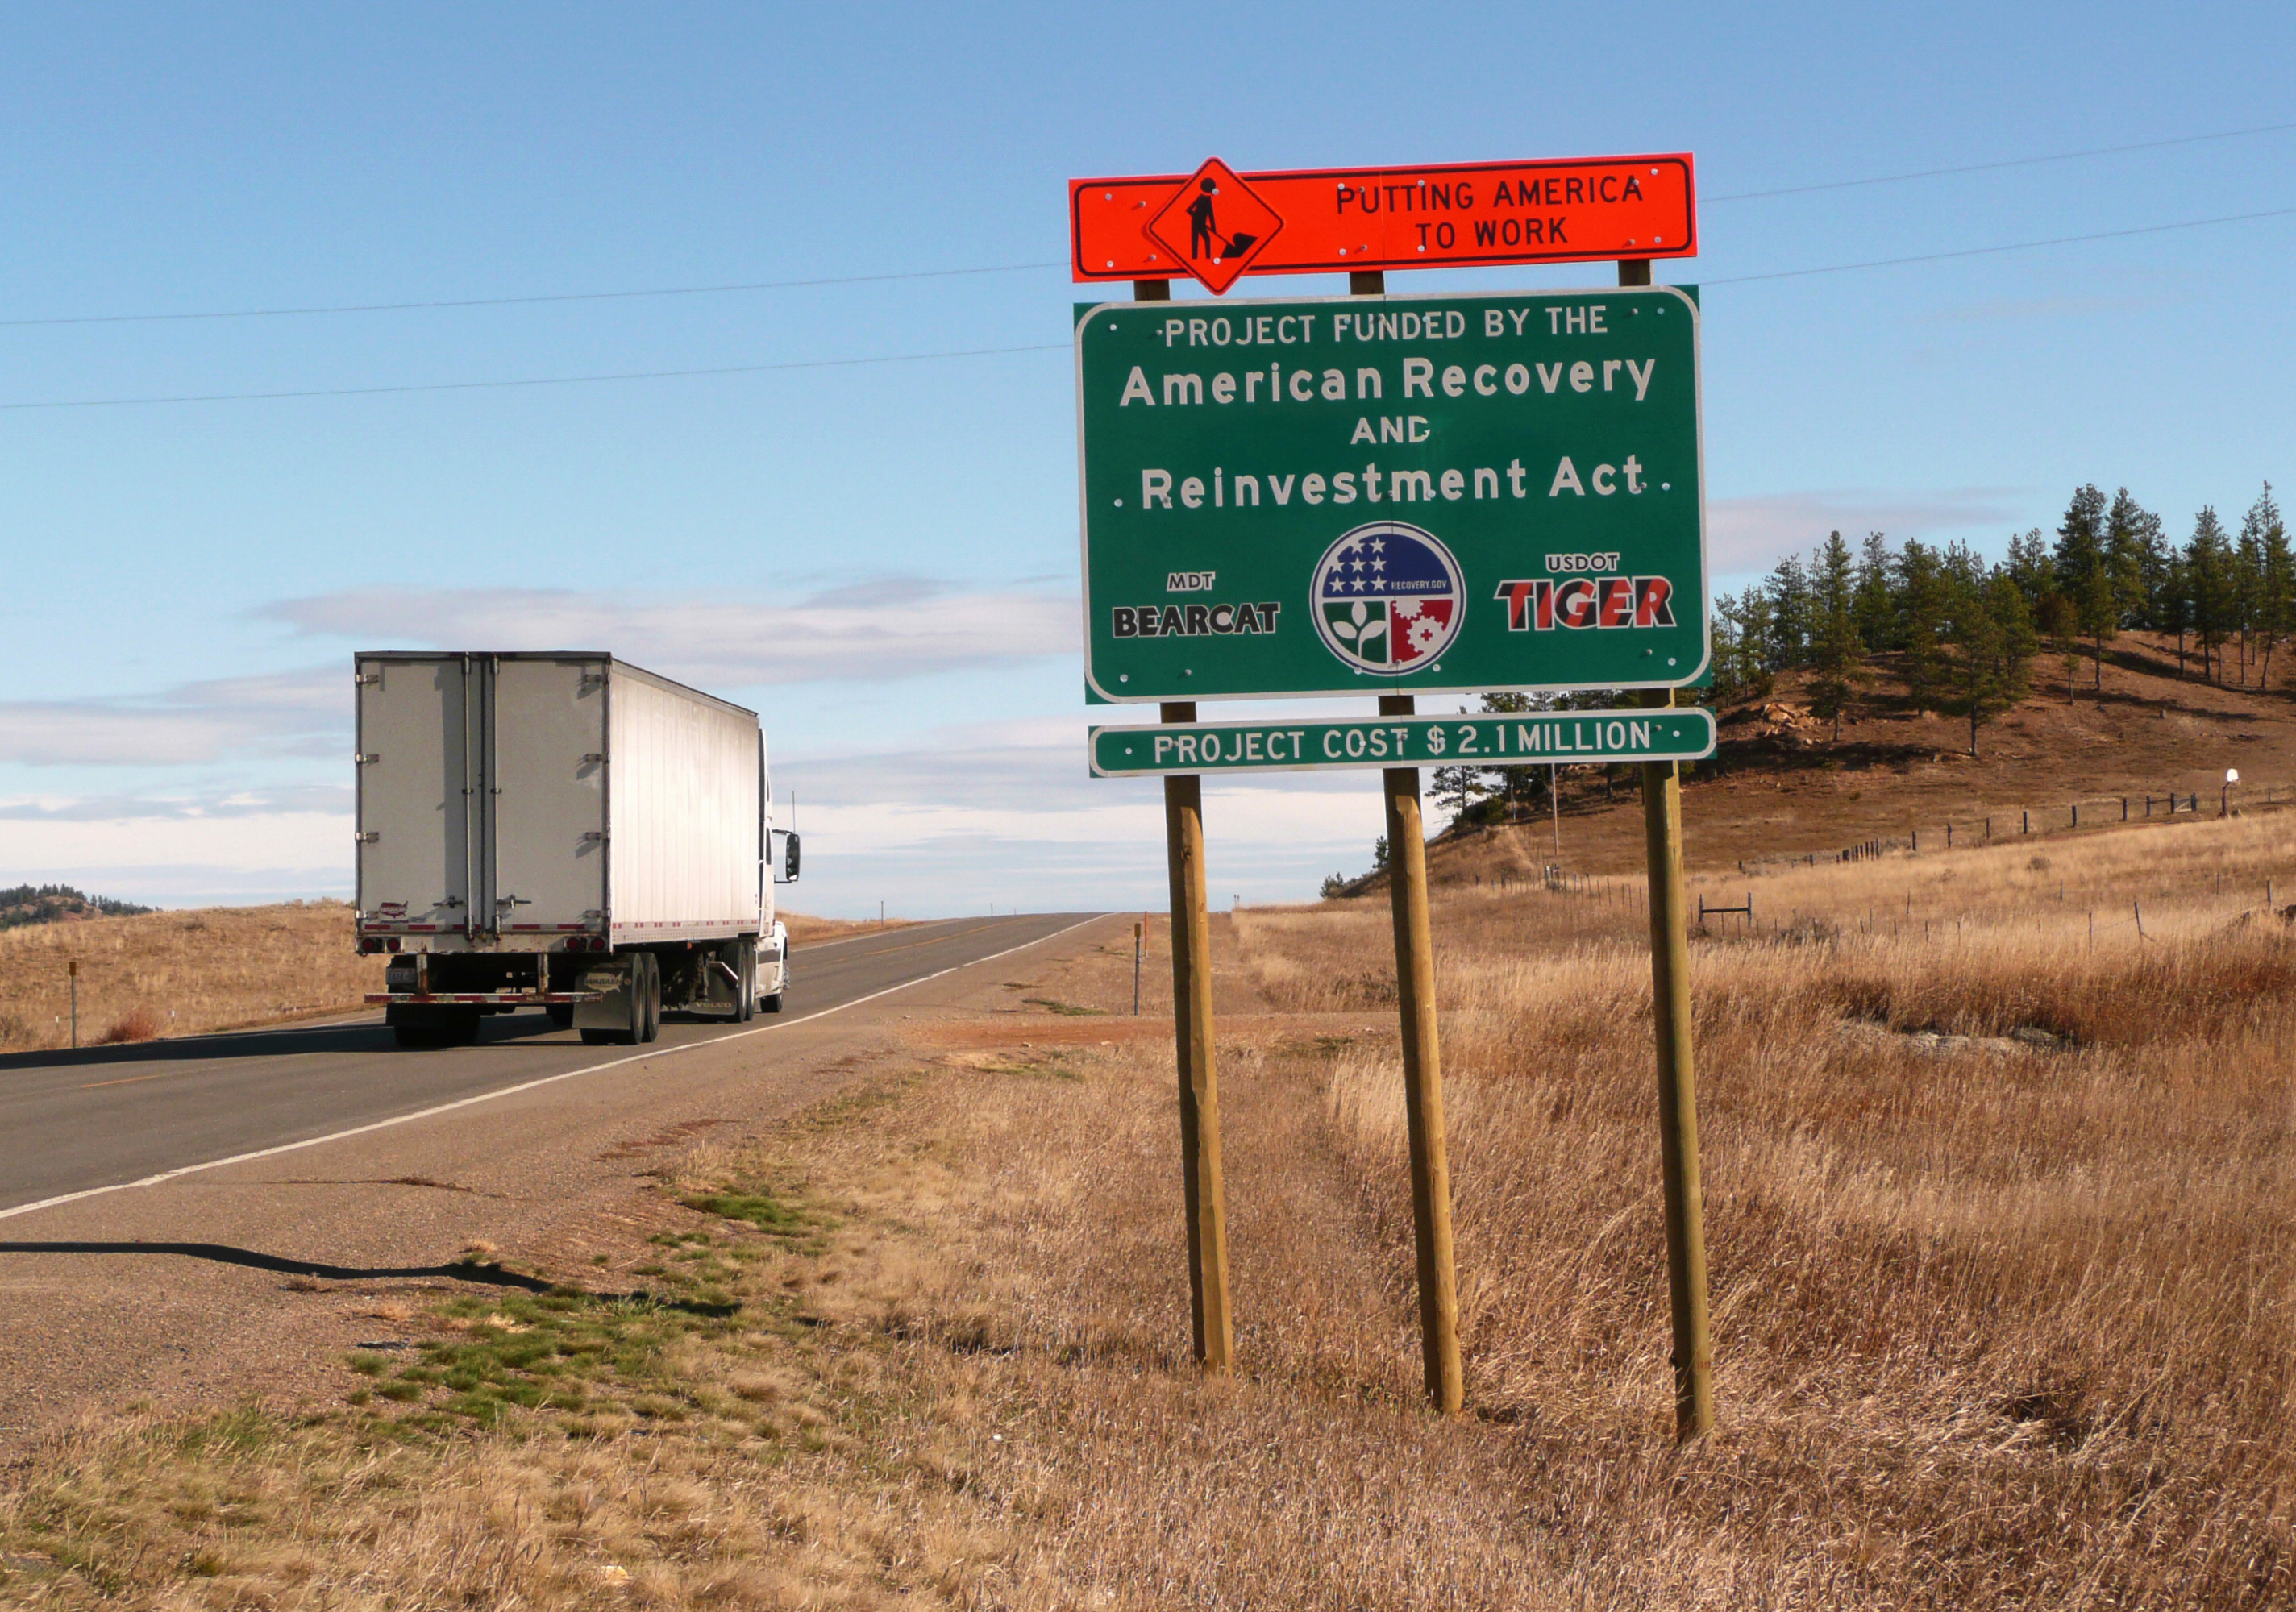 road sign for American Recovery Act